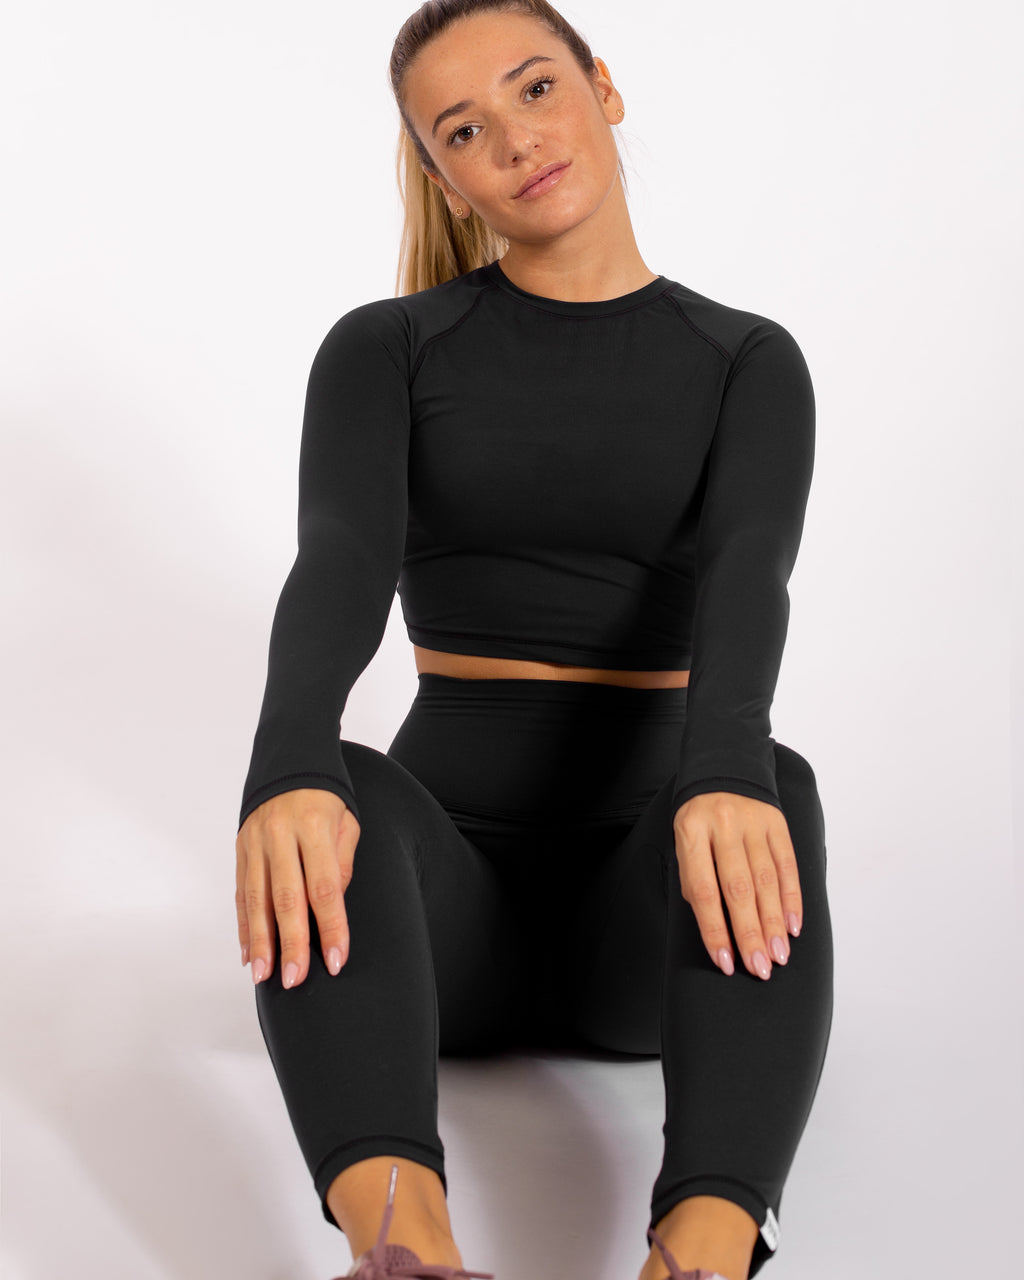 Zen Crop Top - Preto Infinito